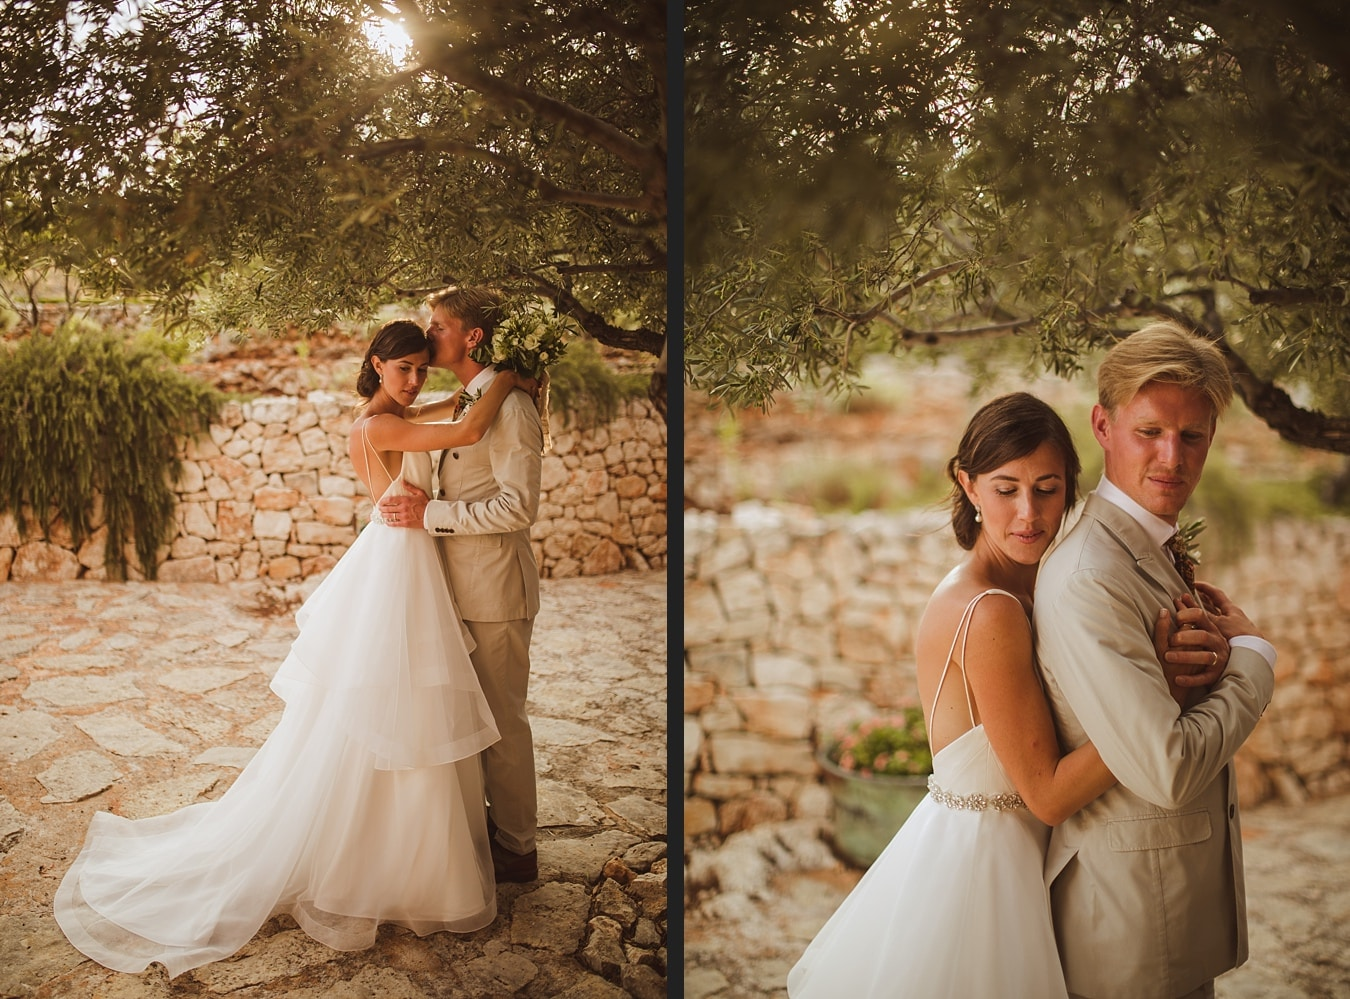 Zakynthos Wedding Photographer 0092